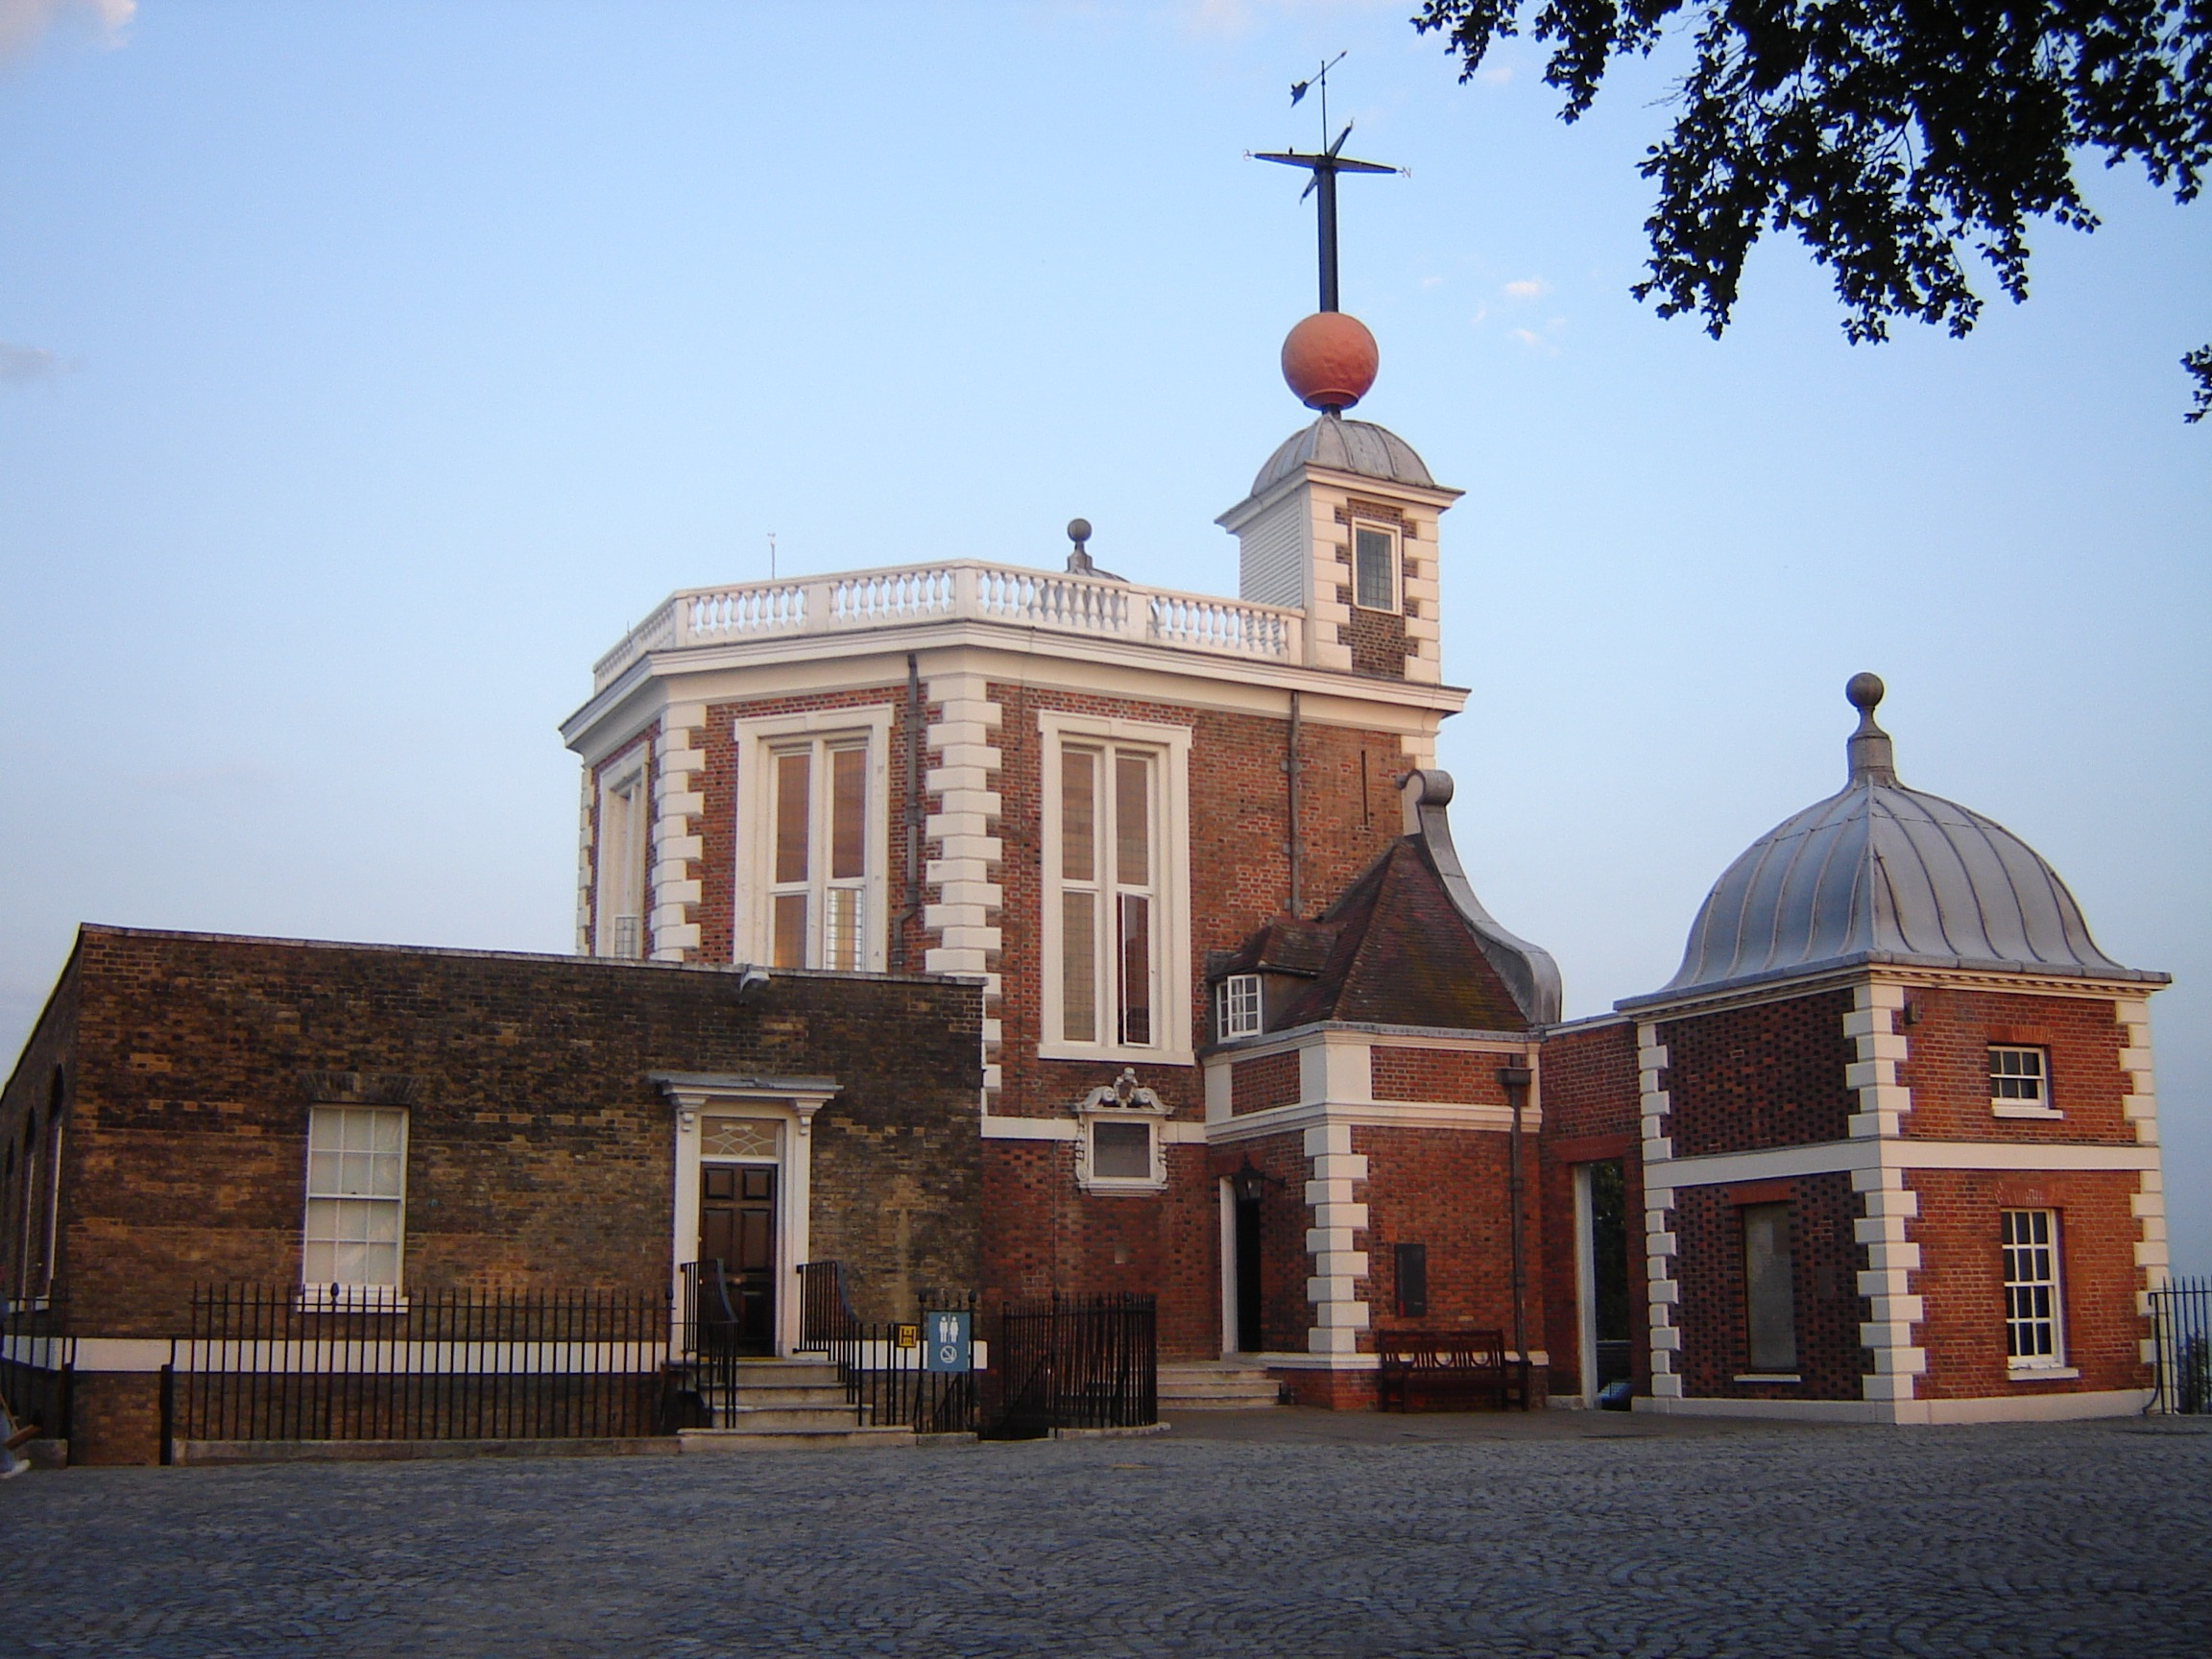 Image of Royal Observatory Greenwich - Flamsteed House